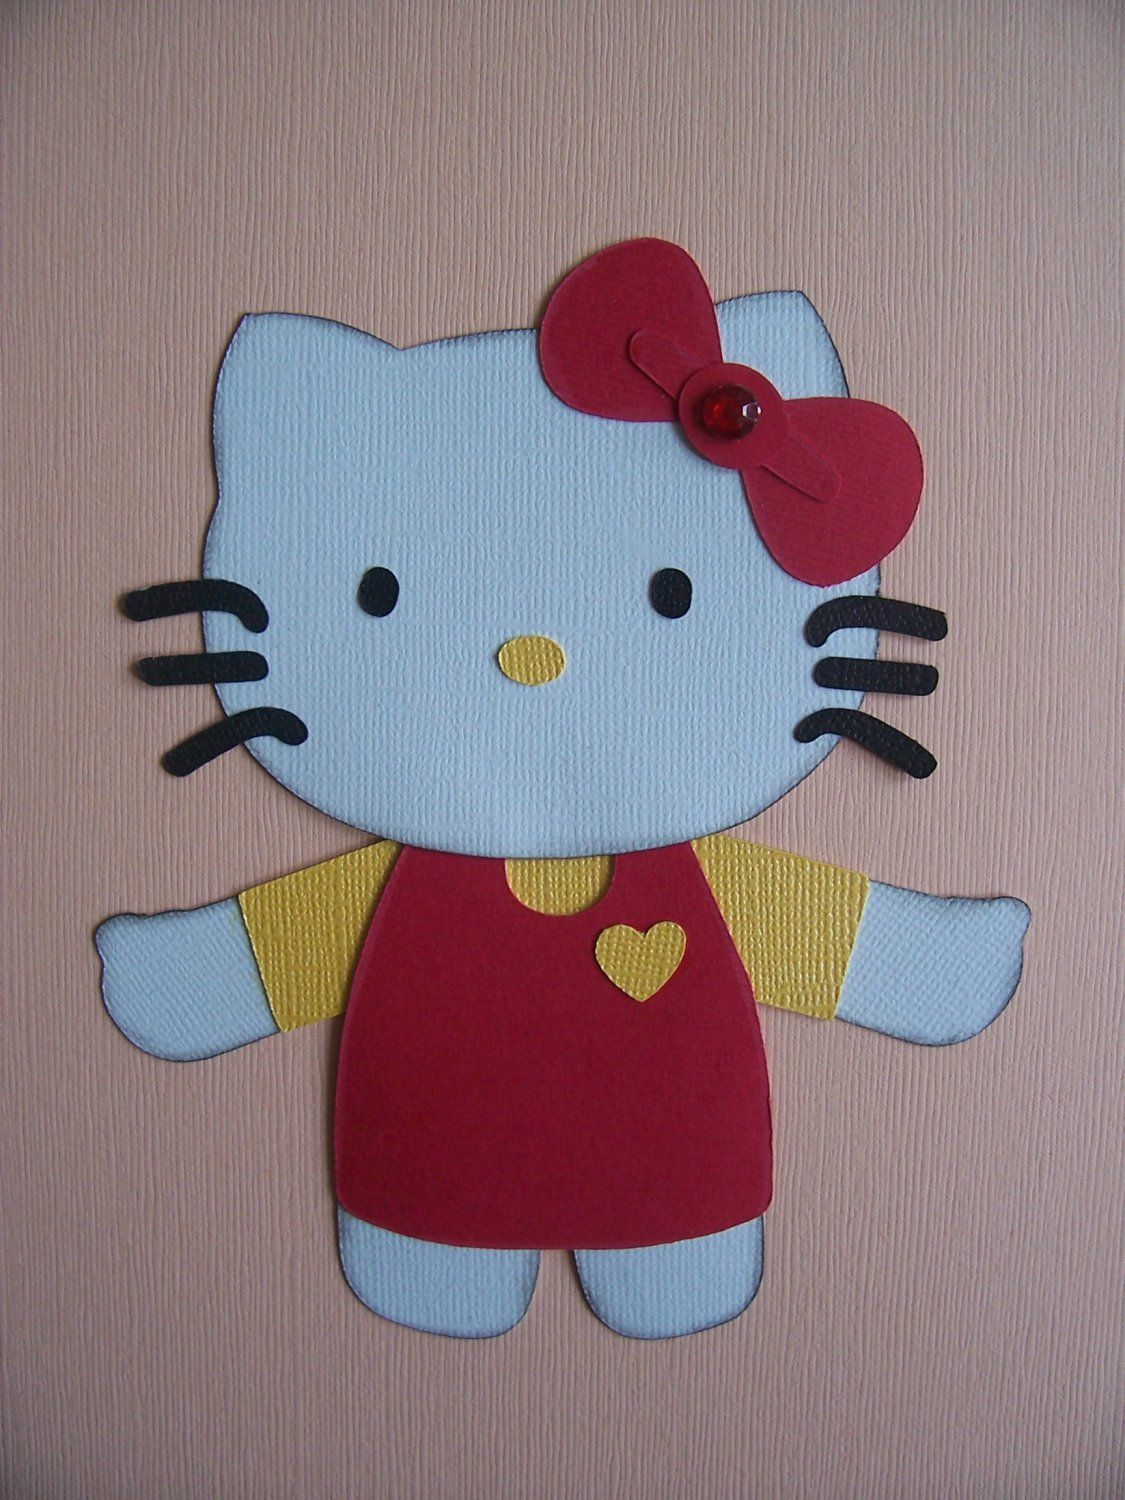 Kitty Scrapbooking Paper Piecing Pattern